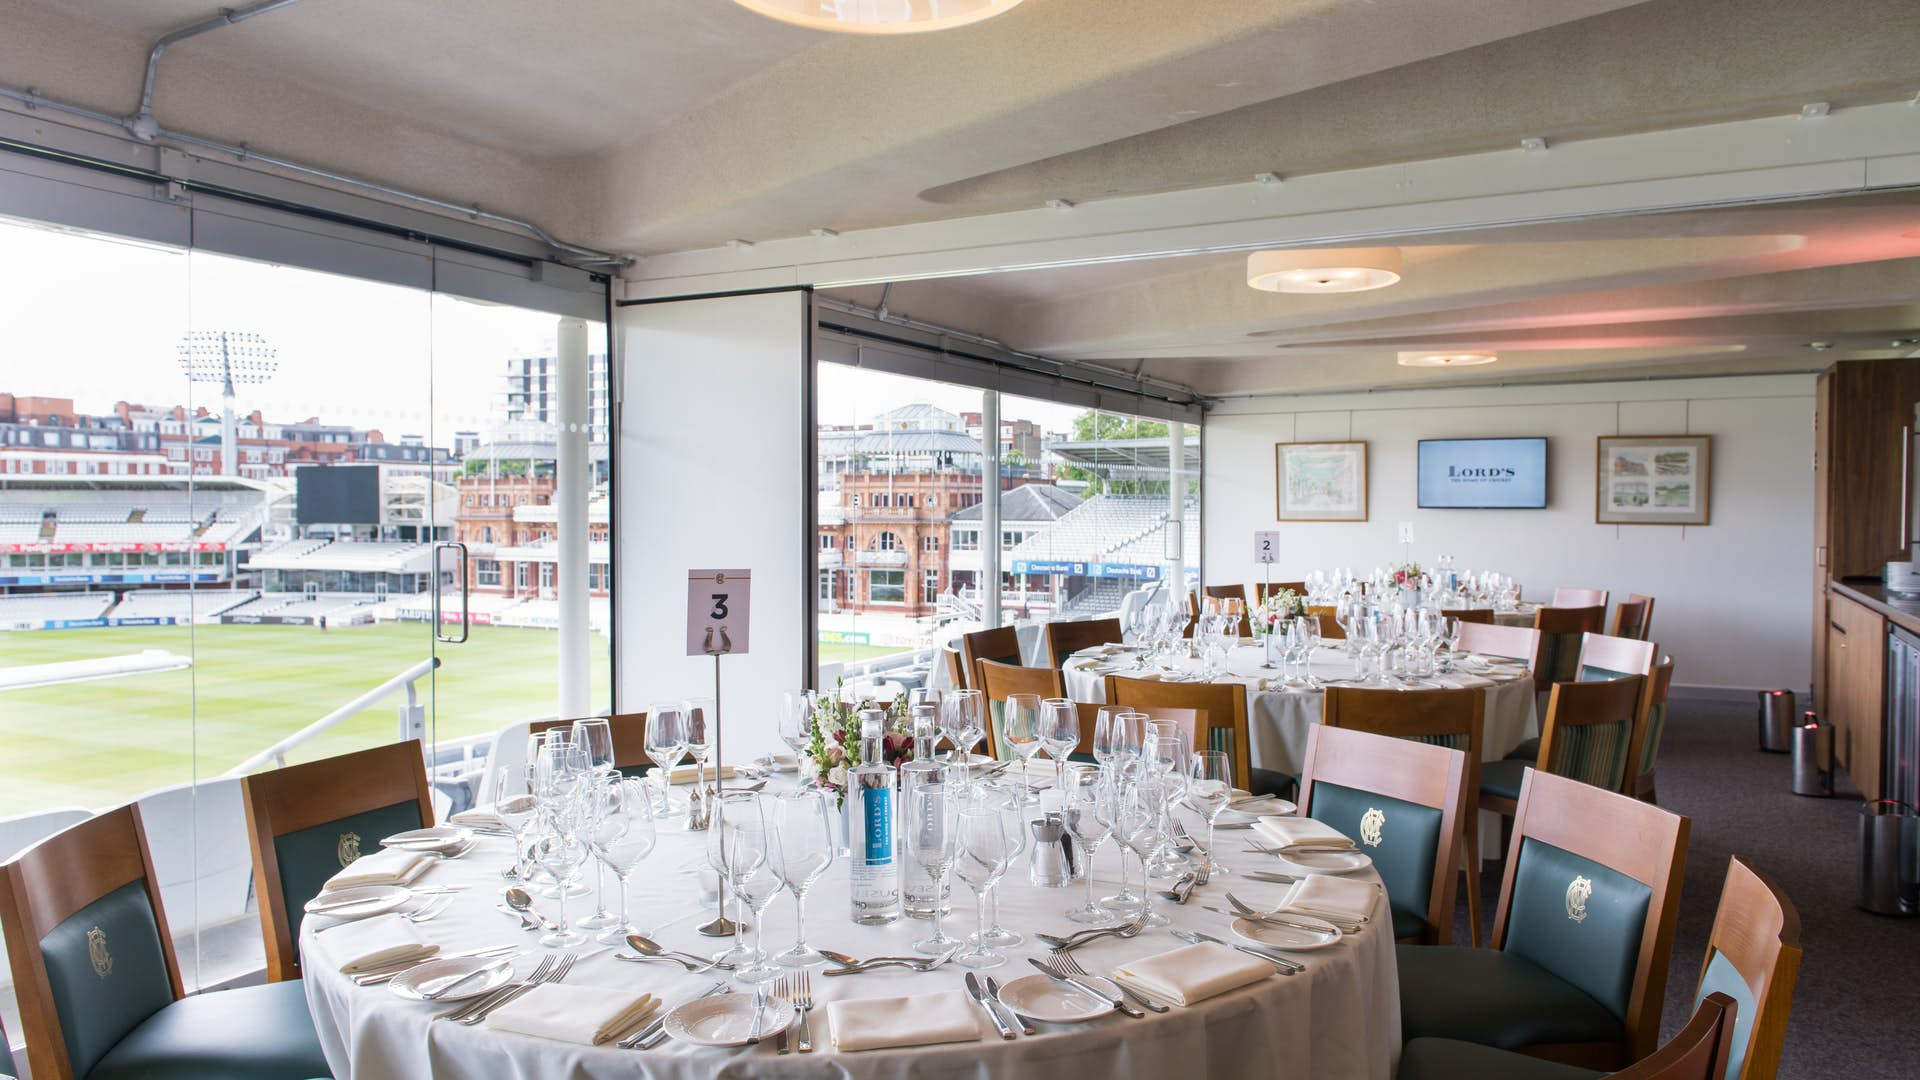 The President's Box at Lord's Cricket Ground